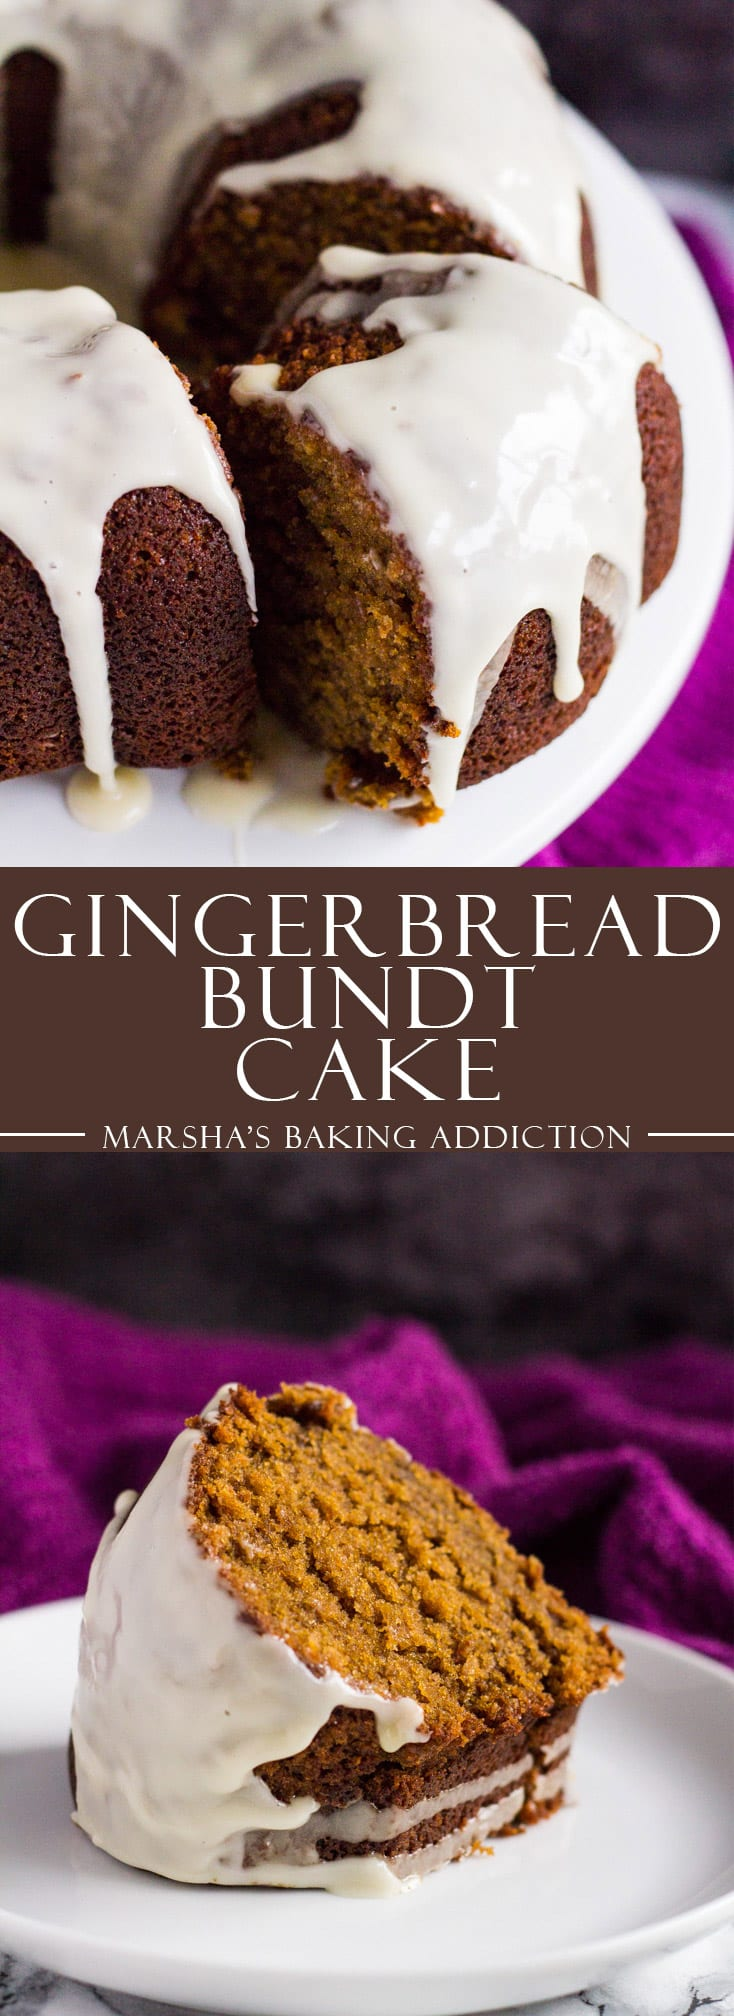 Gingerbread Bundt Cake | marshasbakingaddiction.com @marshasbakeblog